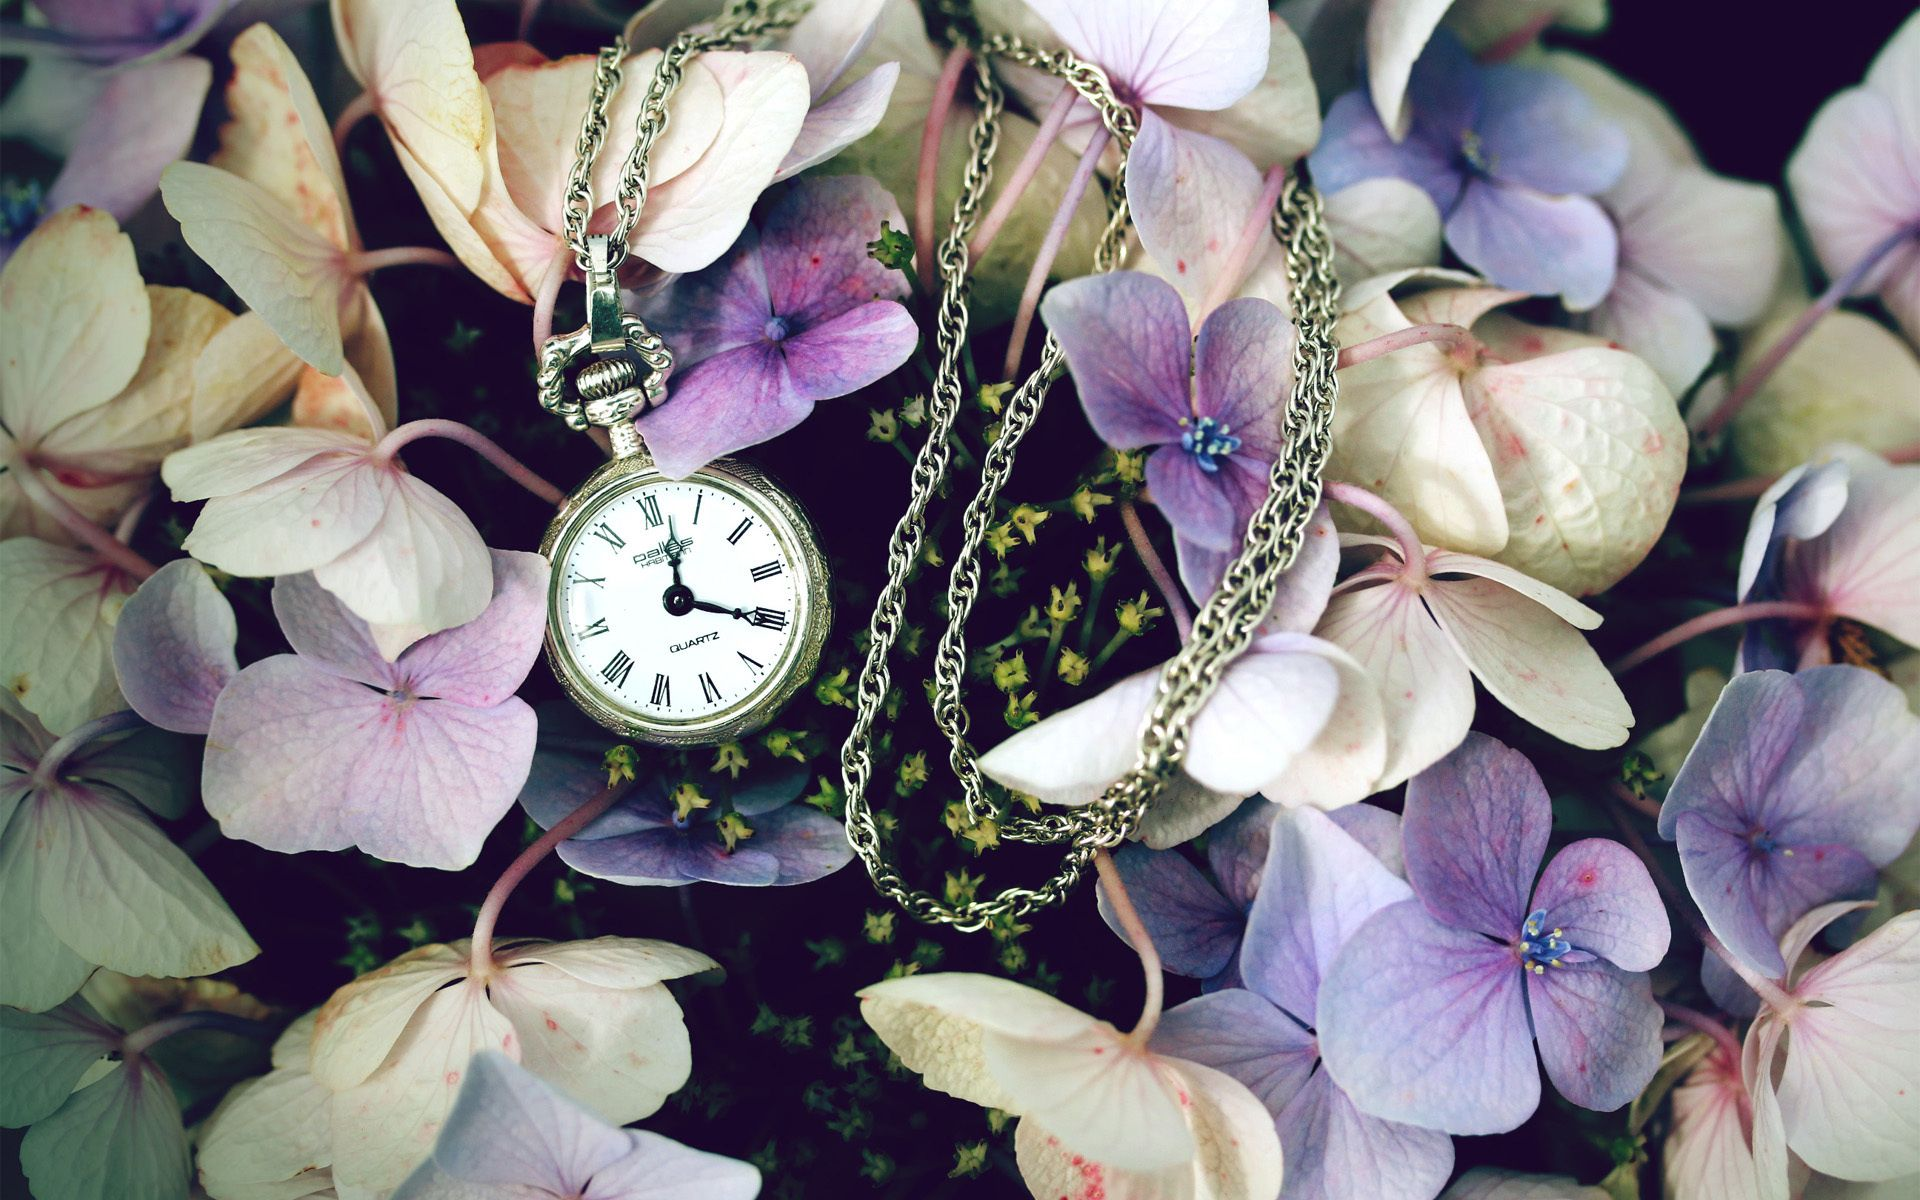 Pocket watch wallpaper  Pocket Watch & Blumen Hintergrundbilder | Pocket Watch & Blumen ...